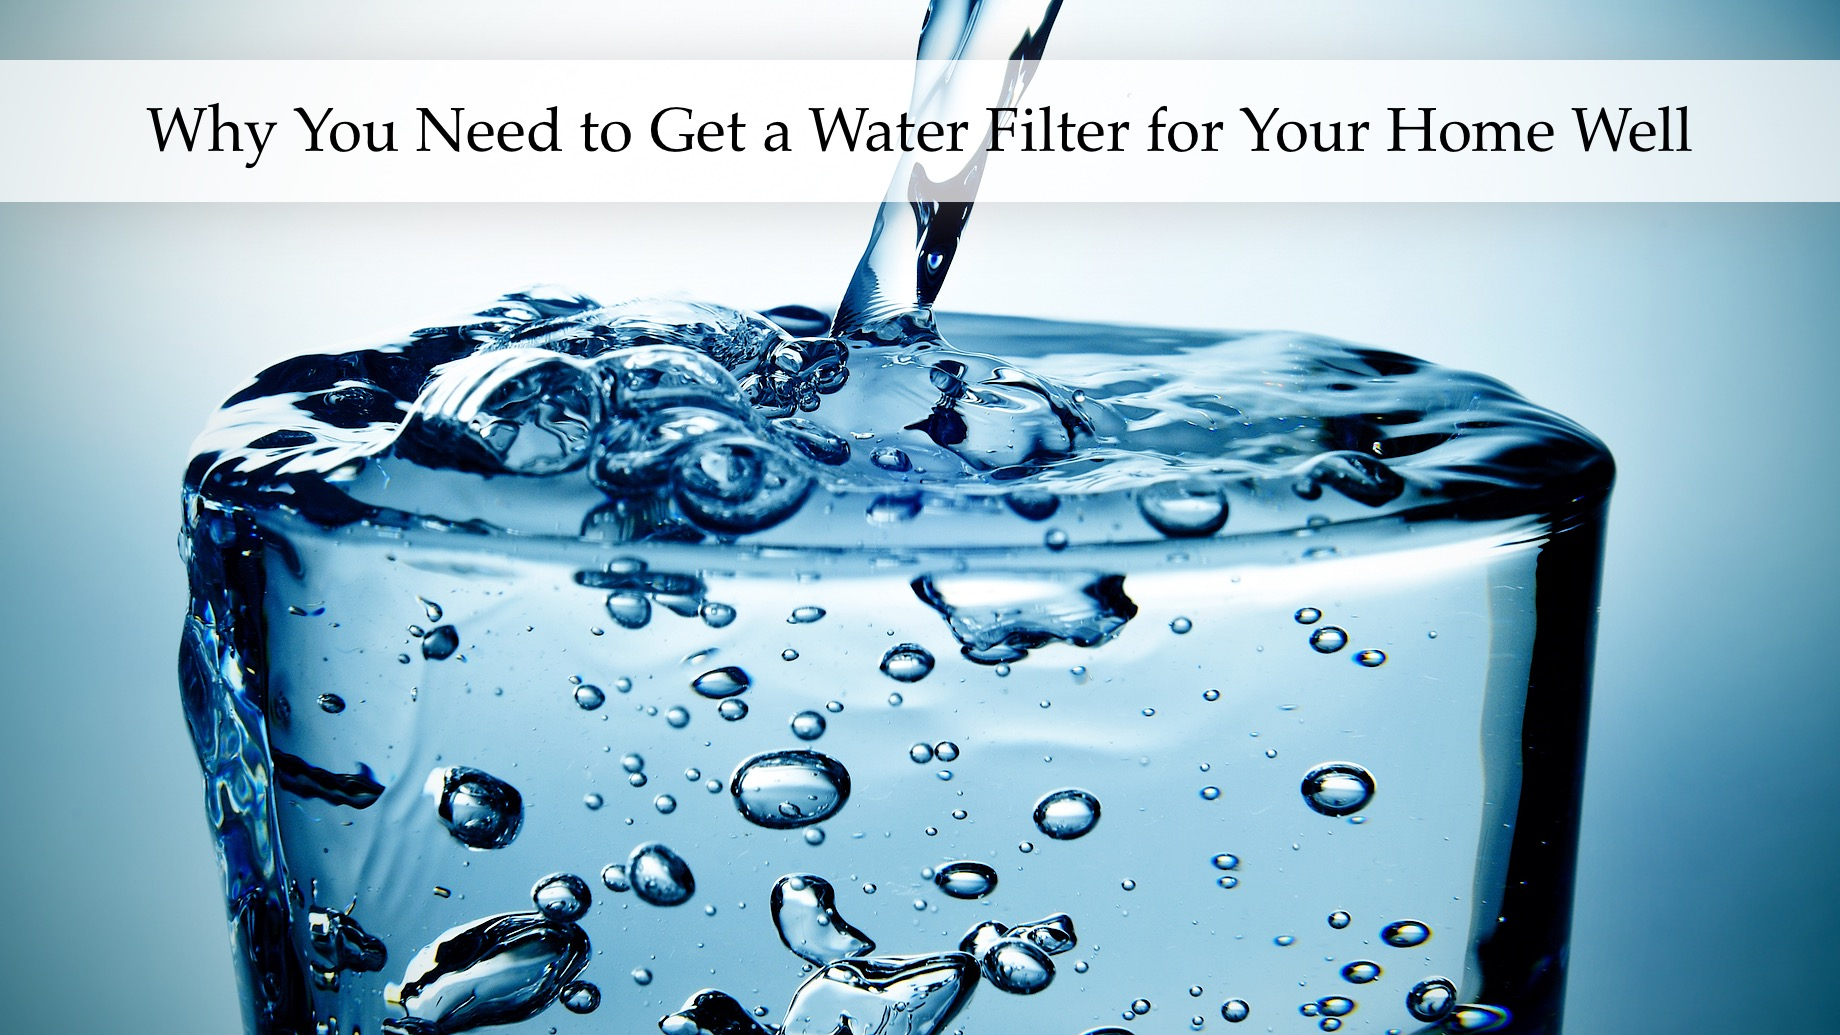 Why You Need to Get a Water Filter for Your Home Well